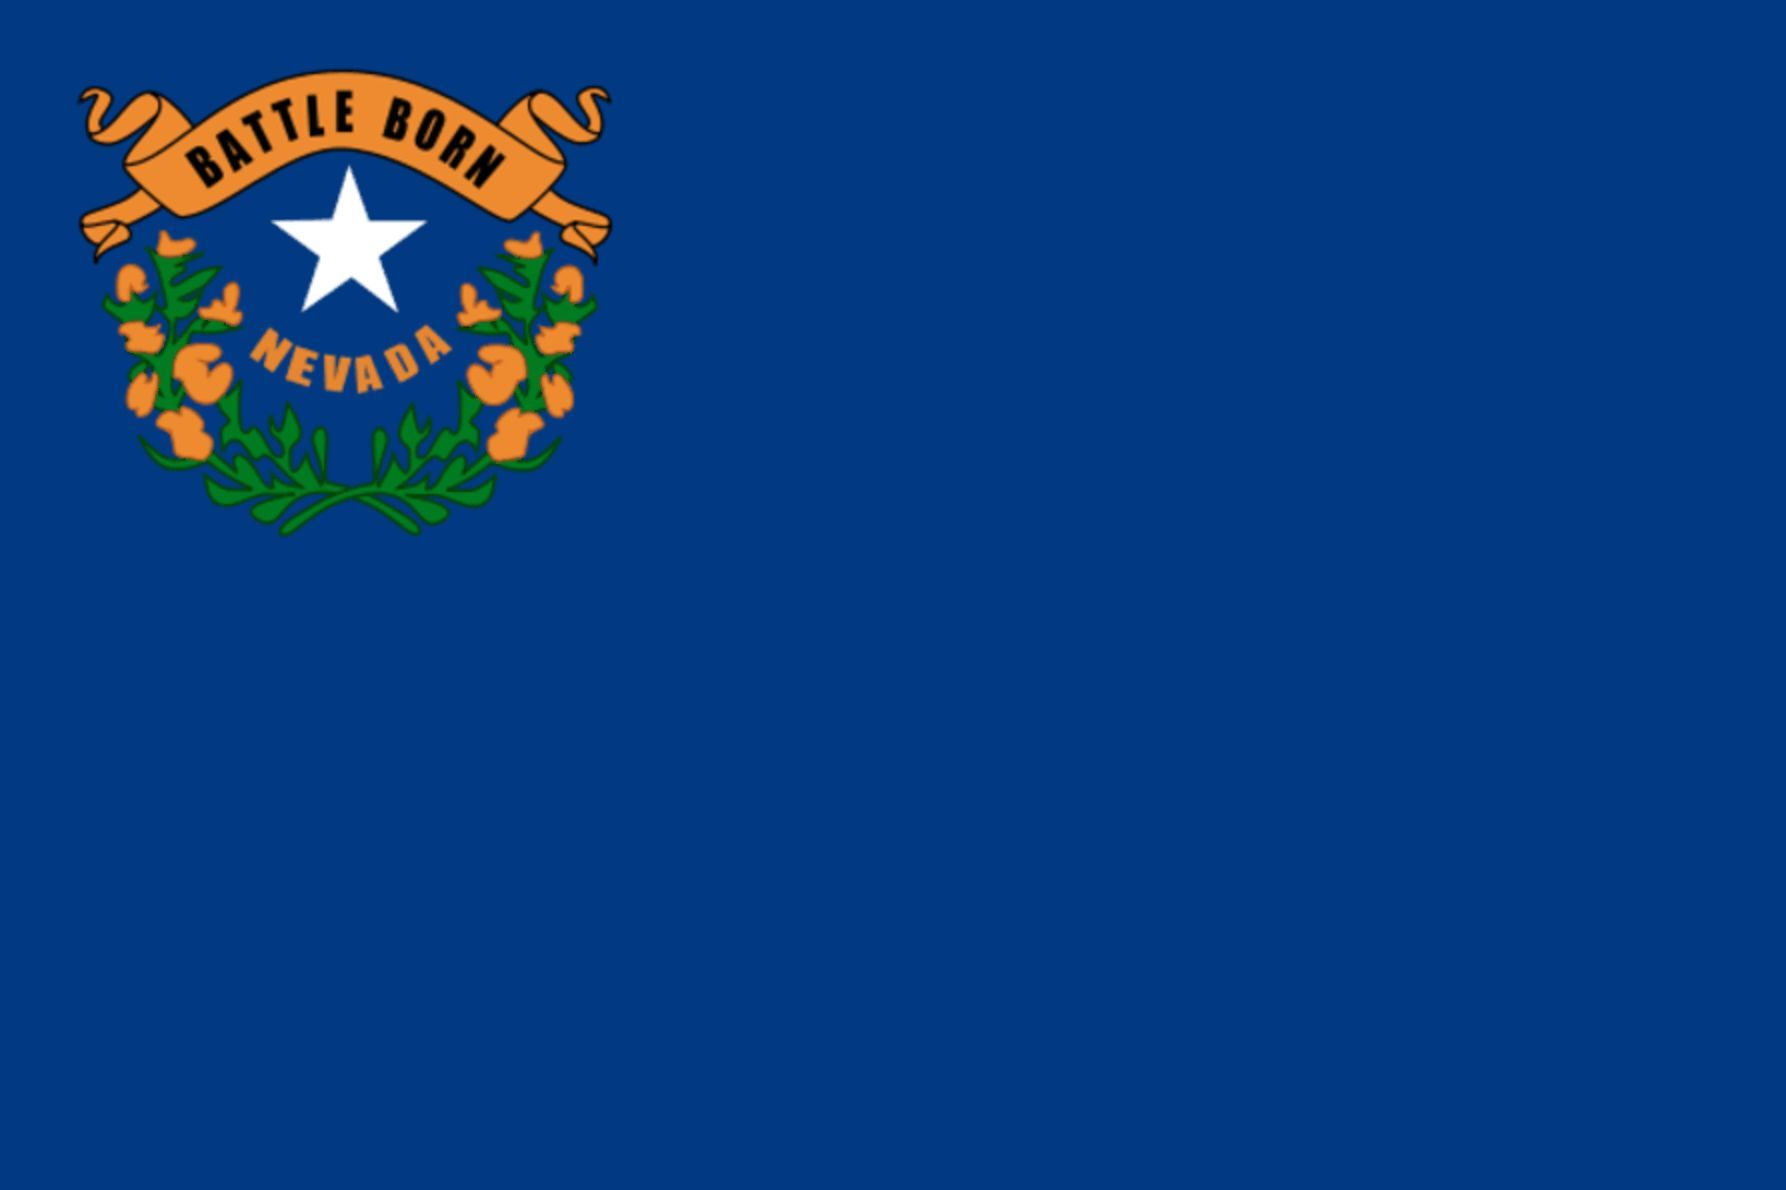 Coloring Pages Nevada State Flag Coloring Page nevada state flag 36th to enter into the union date of statehood october 31 1864 capital carson city flags